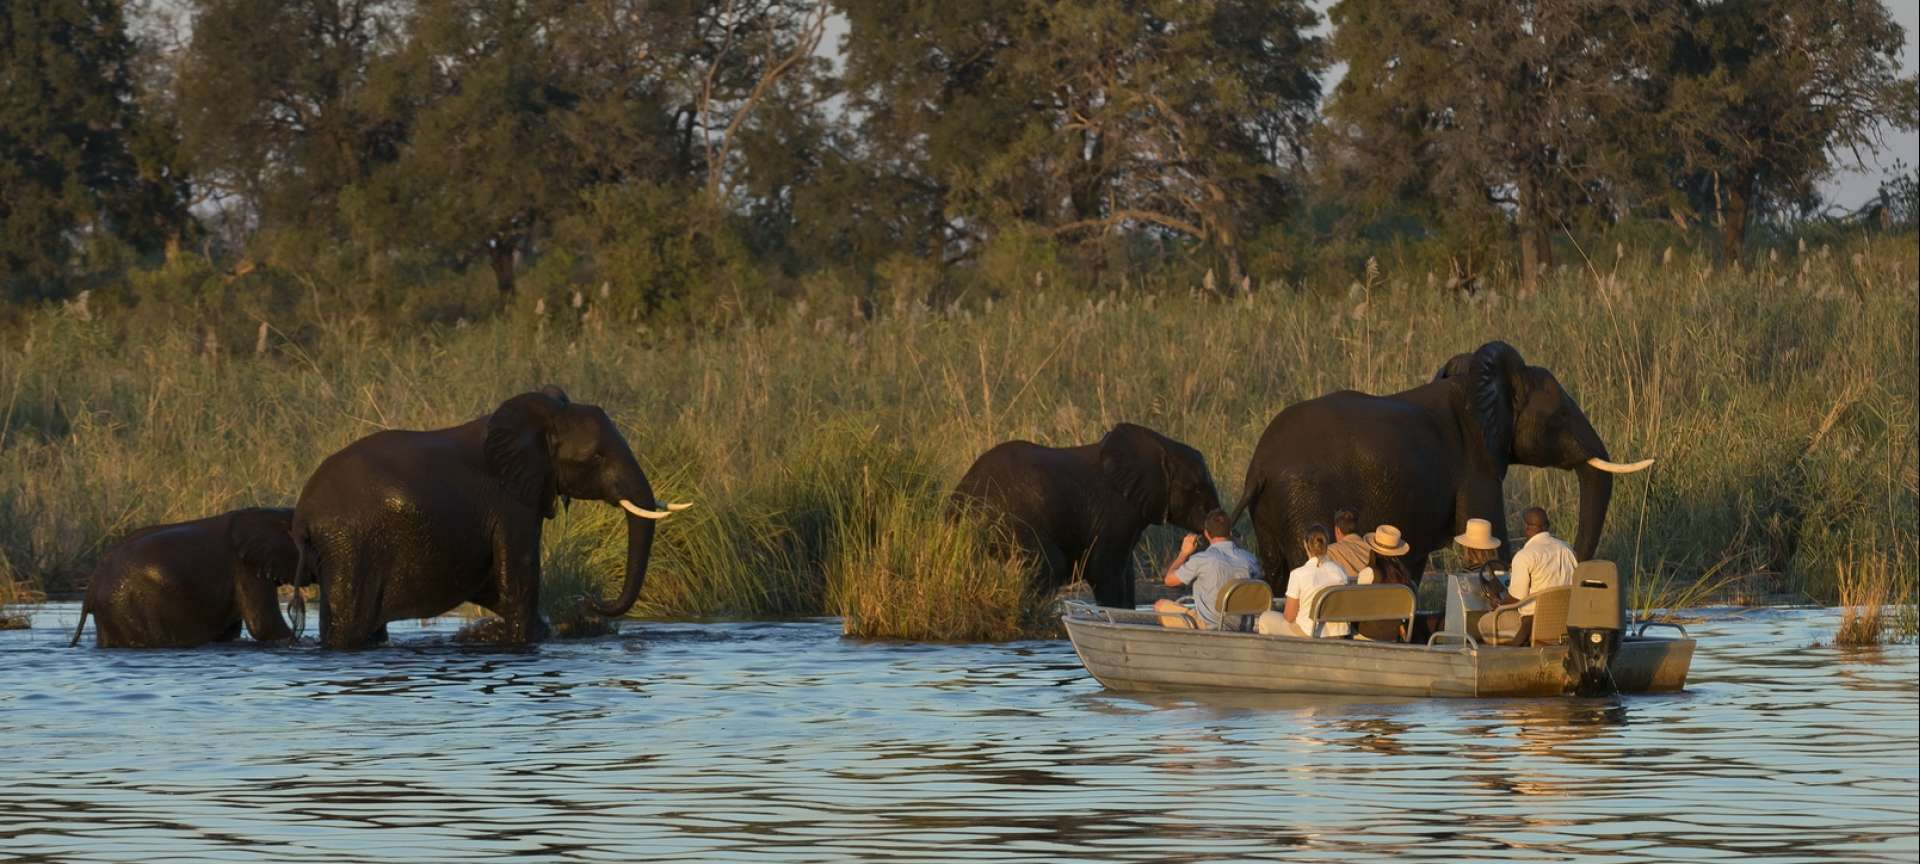 Early morning boat trips down or up the Zambezi river will offer unique views of the wading wildlife